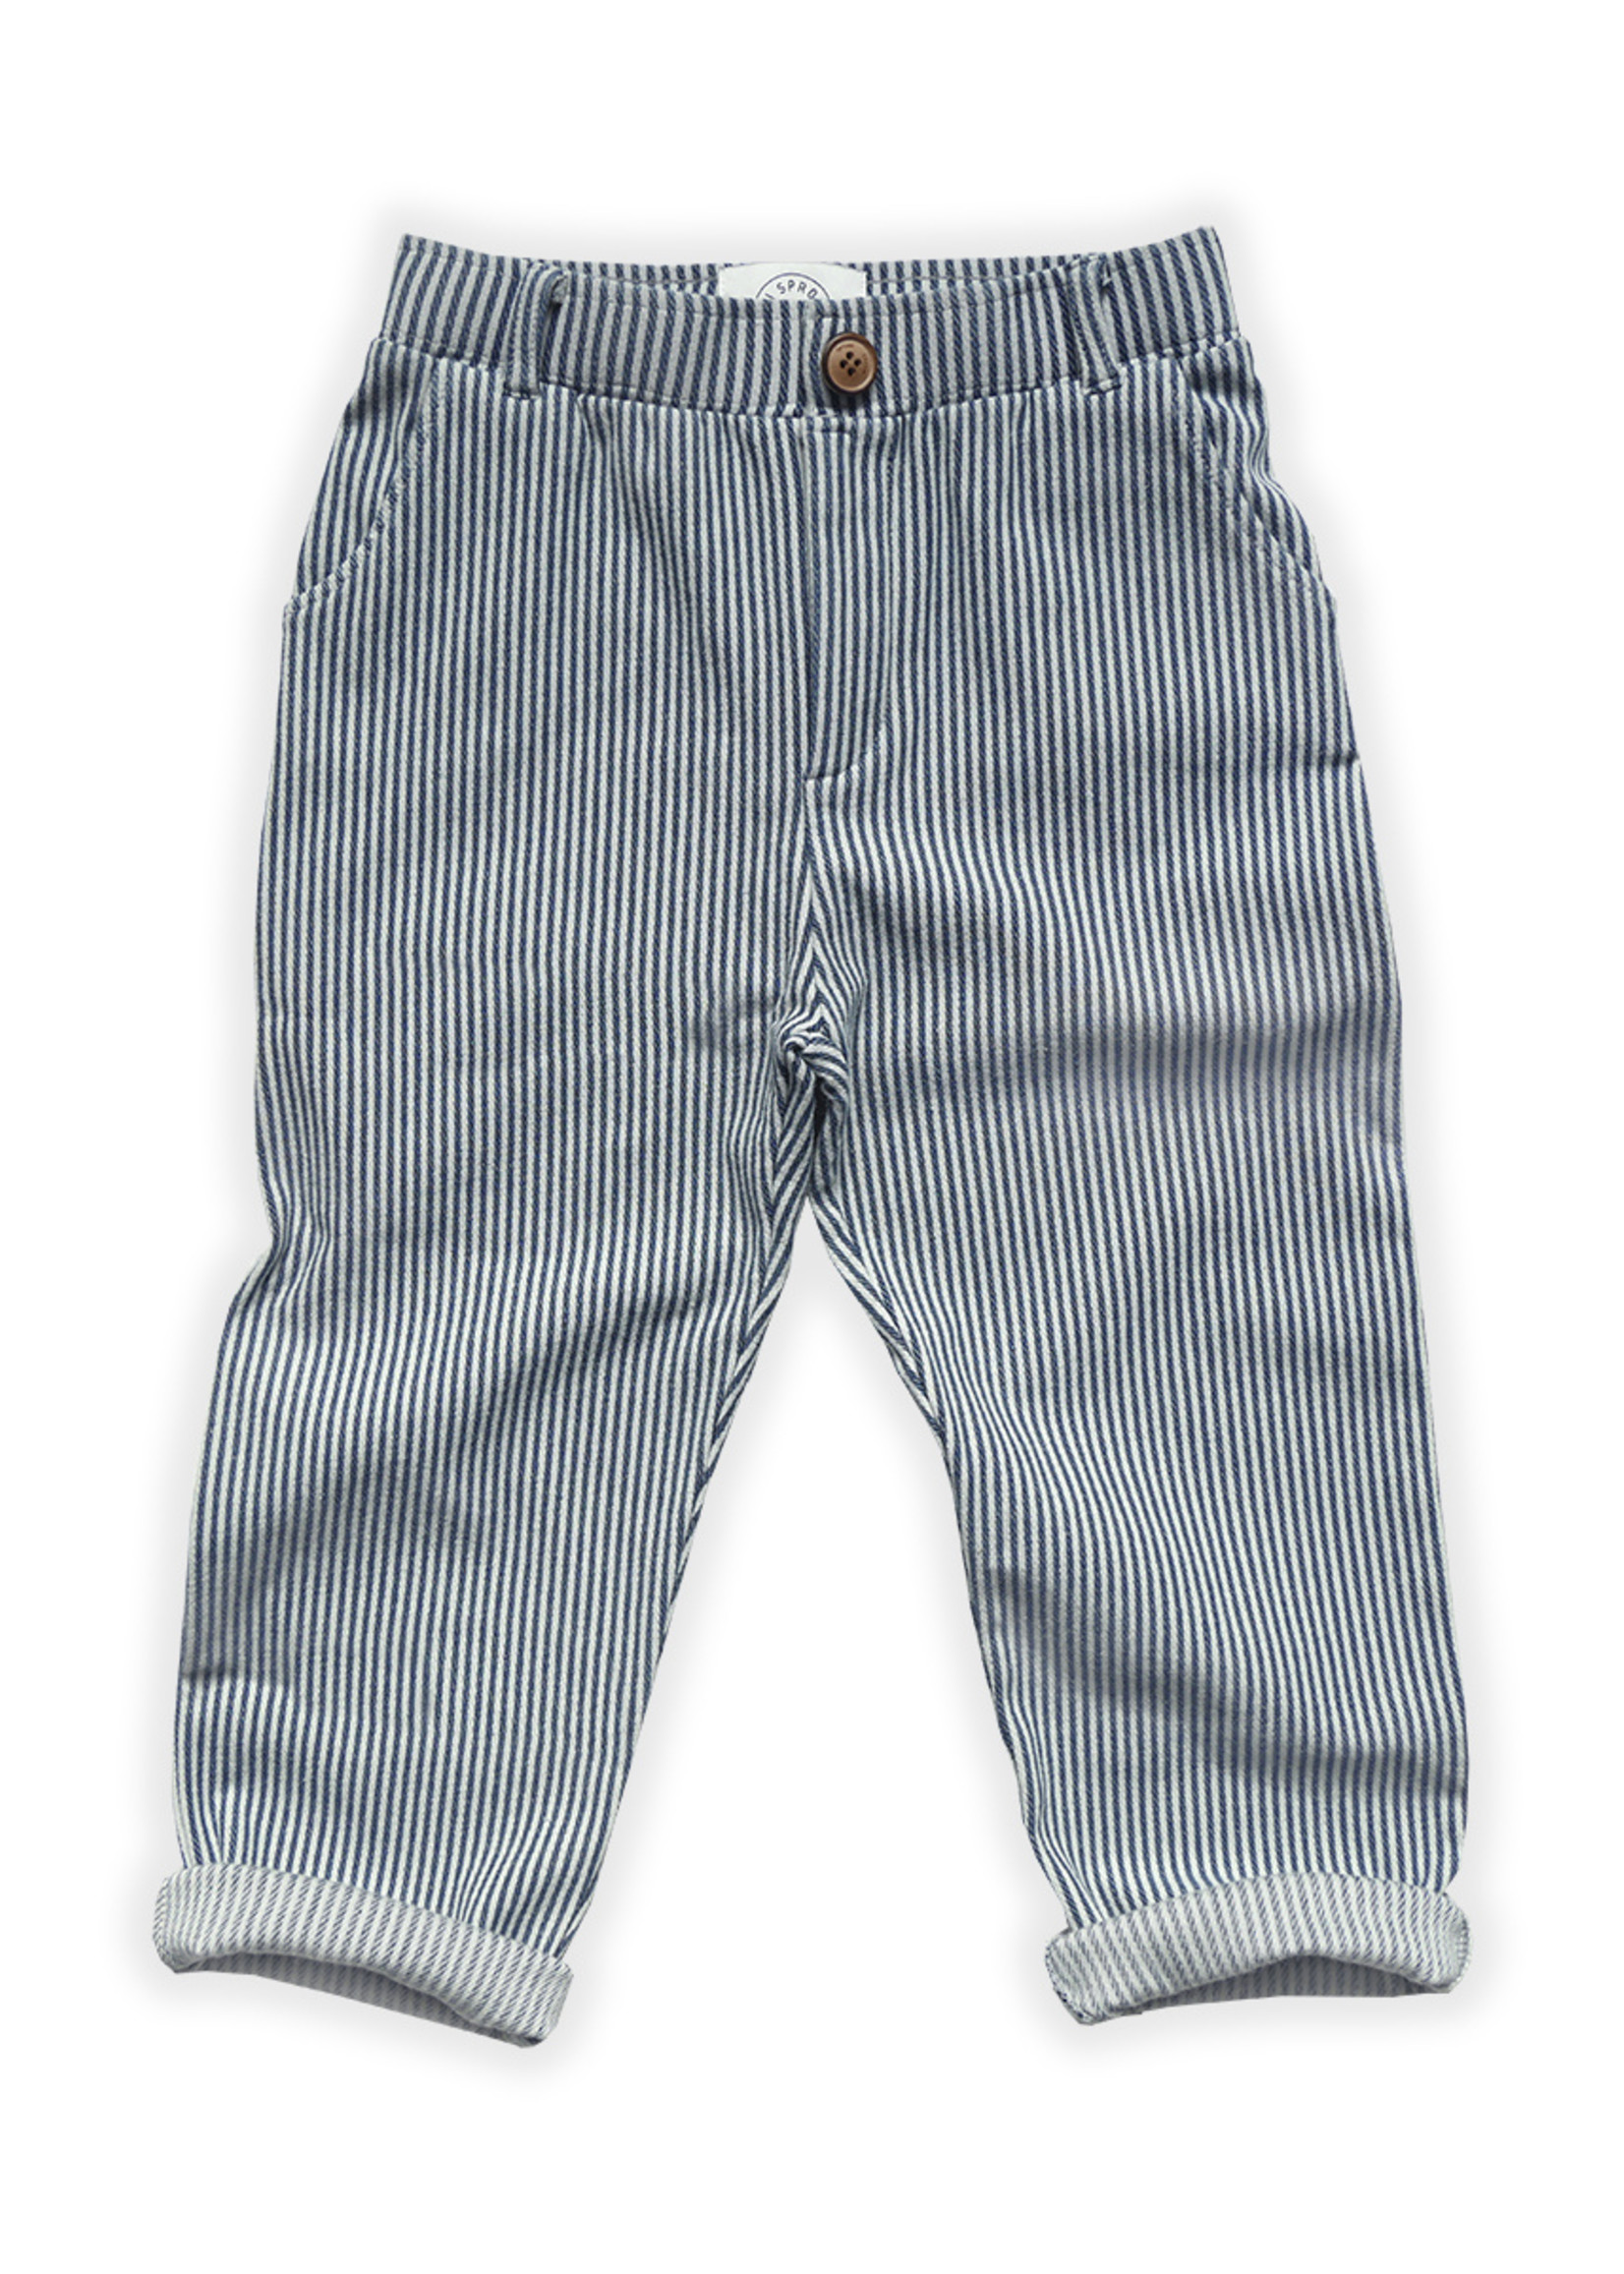 Sproet & Sprout SS - Chino Pants Denim Stripe